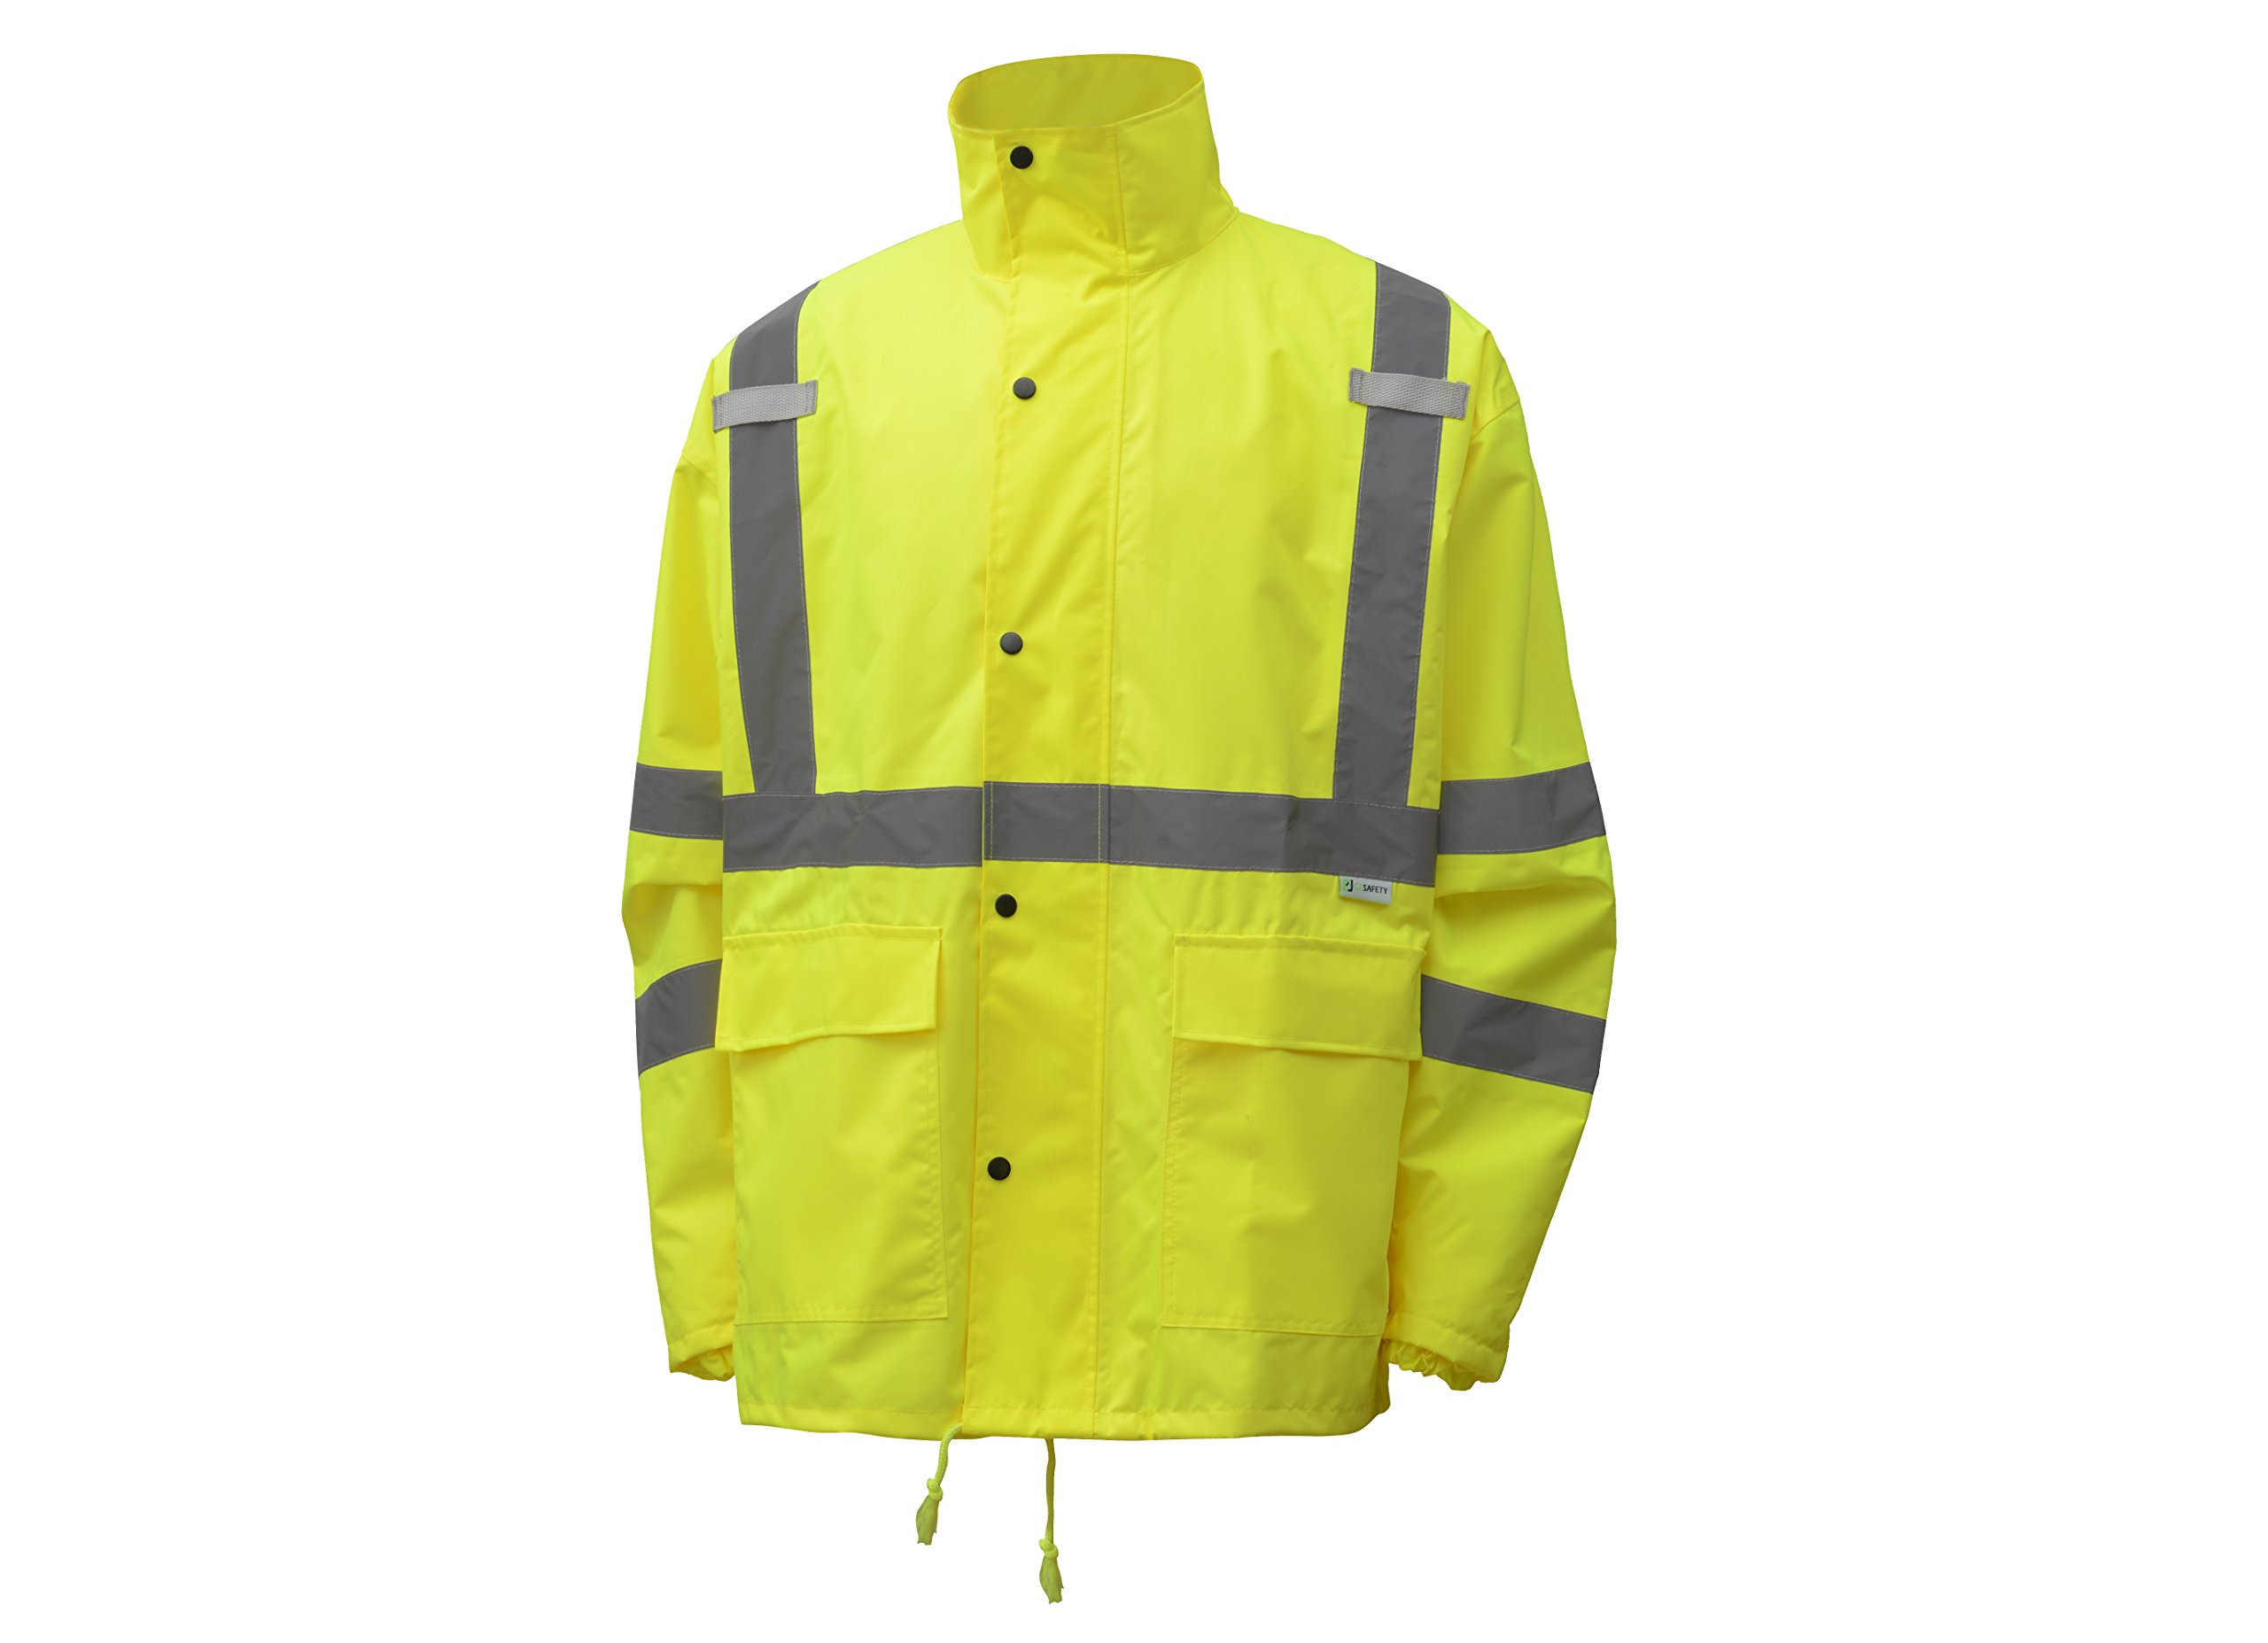 CJ Safety CJHVRJ3003 High Visibility Safety Rain Jacket - Waterproof & Light weight (Extra Large, Green)